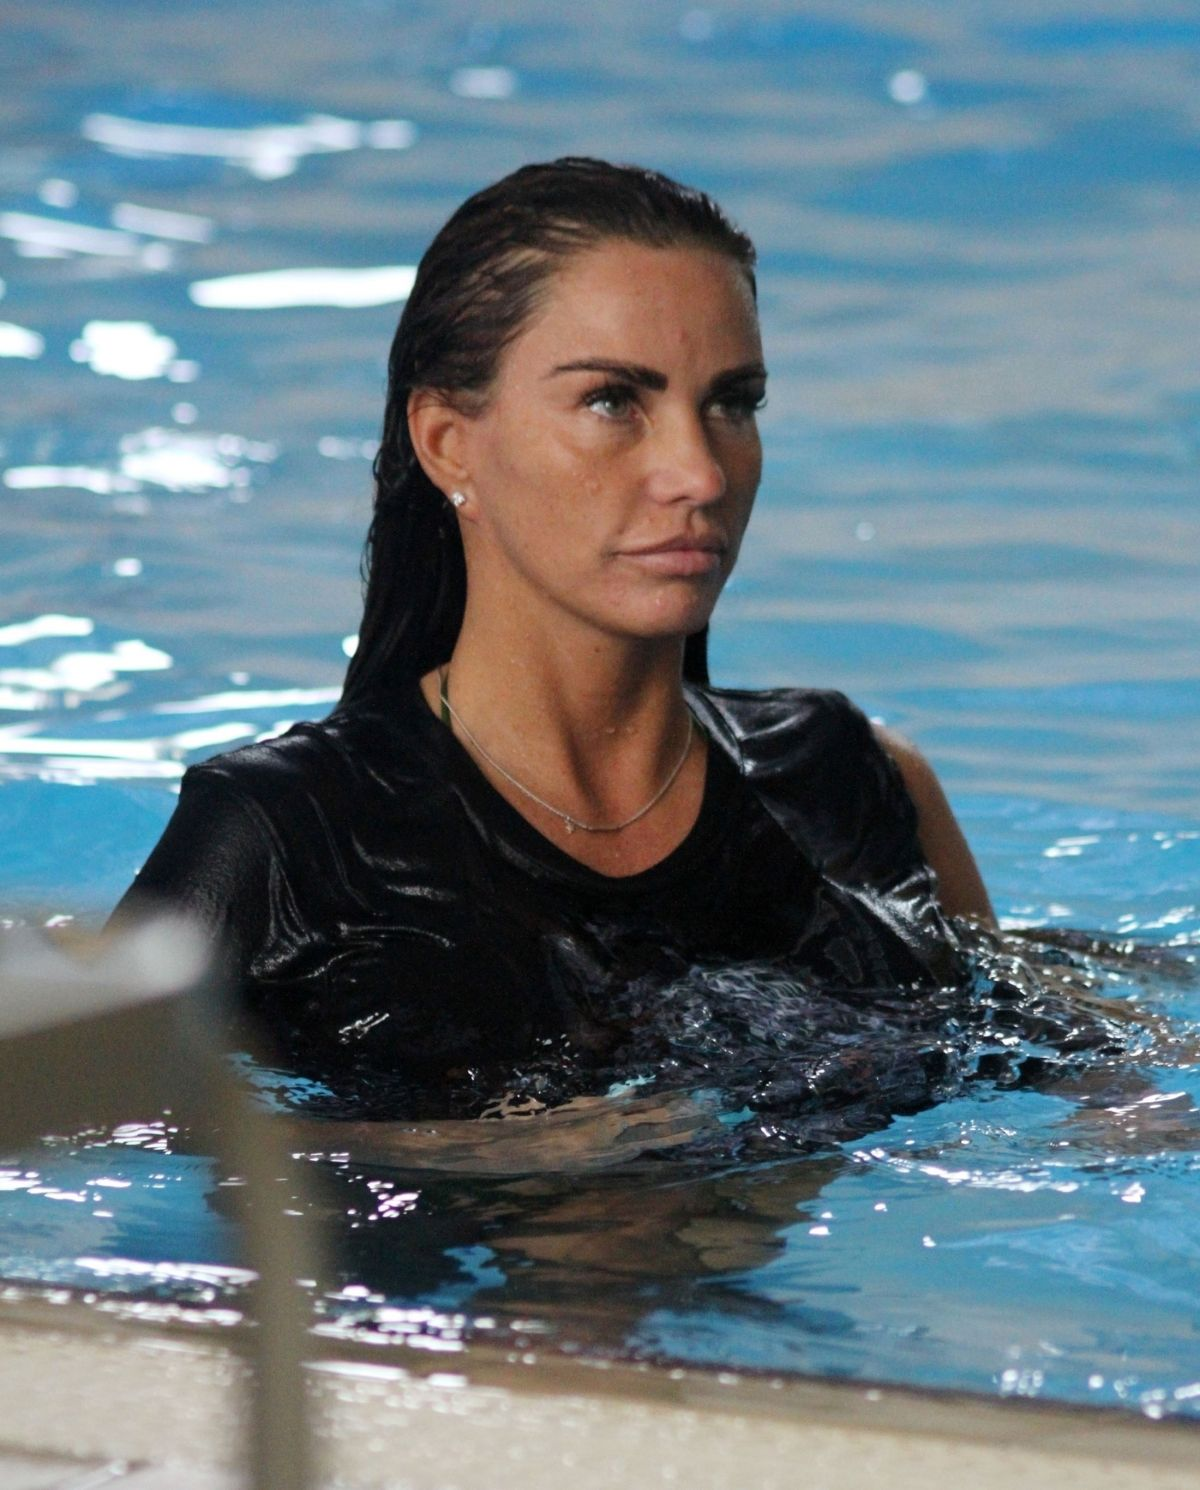 KATIE PRICE at a Local Swimming Pool 06/29/2018 - HawtCelebs